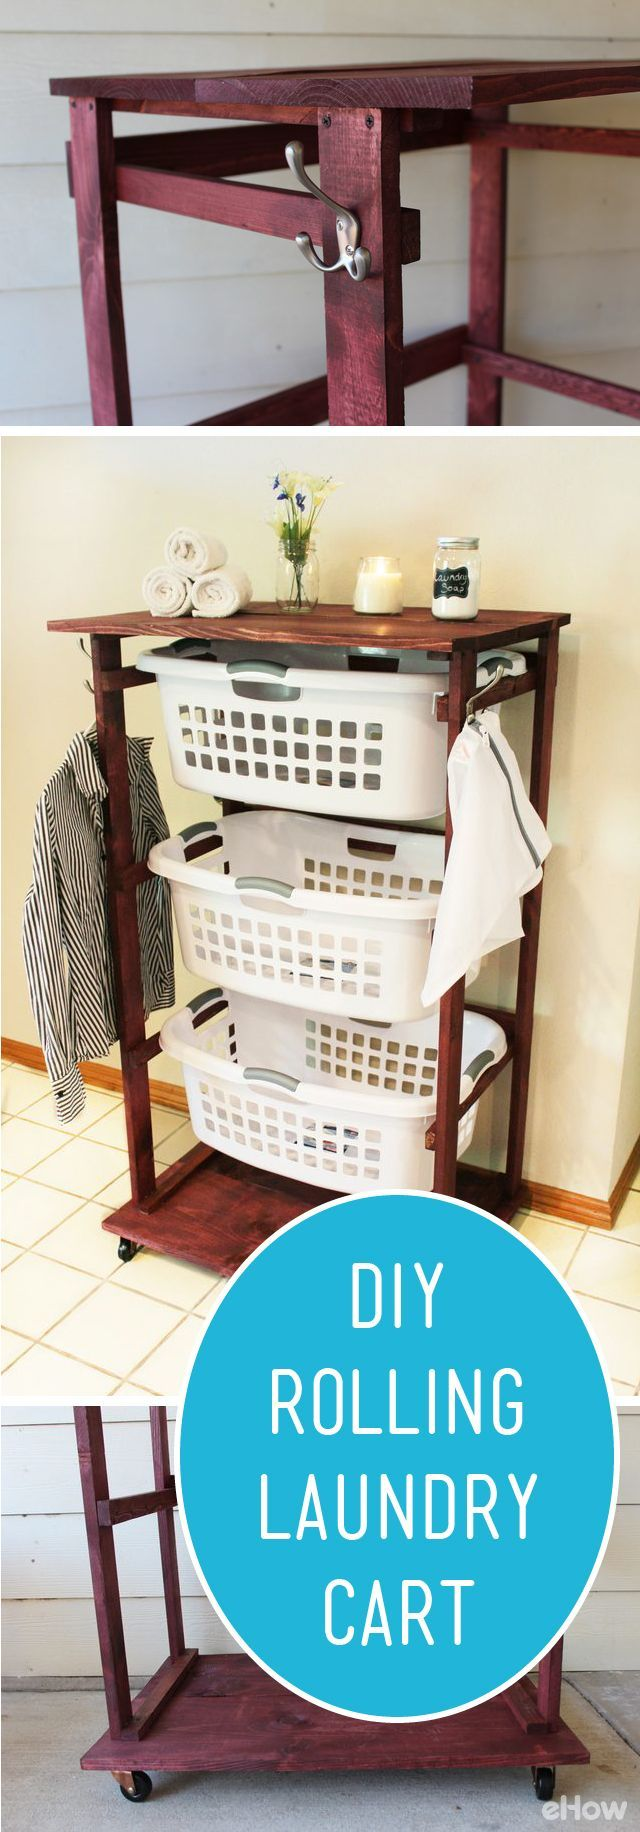 A rolling laundry cart allows you to push around three laundry baskets at once, cutting down on time and labor. Simply roll your baskets from room to room and with ease - no lifting big loads required! DIY instructions here: http://www.ehow.com/how_12048145_diy-rolling-laundry-cart.html?utm_source=pinterest.com&utm_medium=referral&utm_content=freestyle&utm_campaign=fanpage